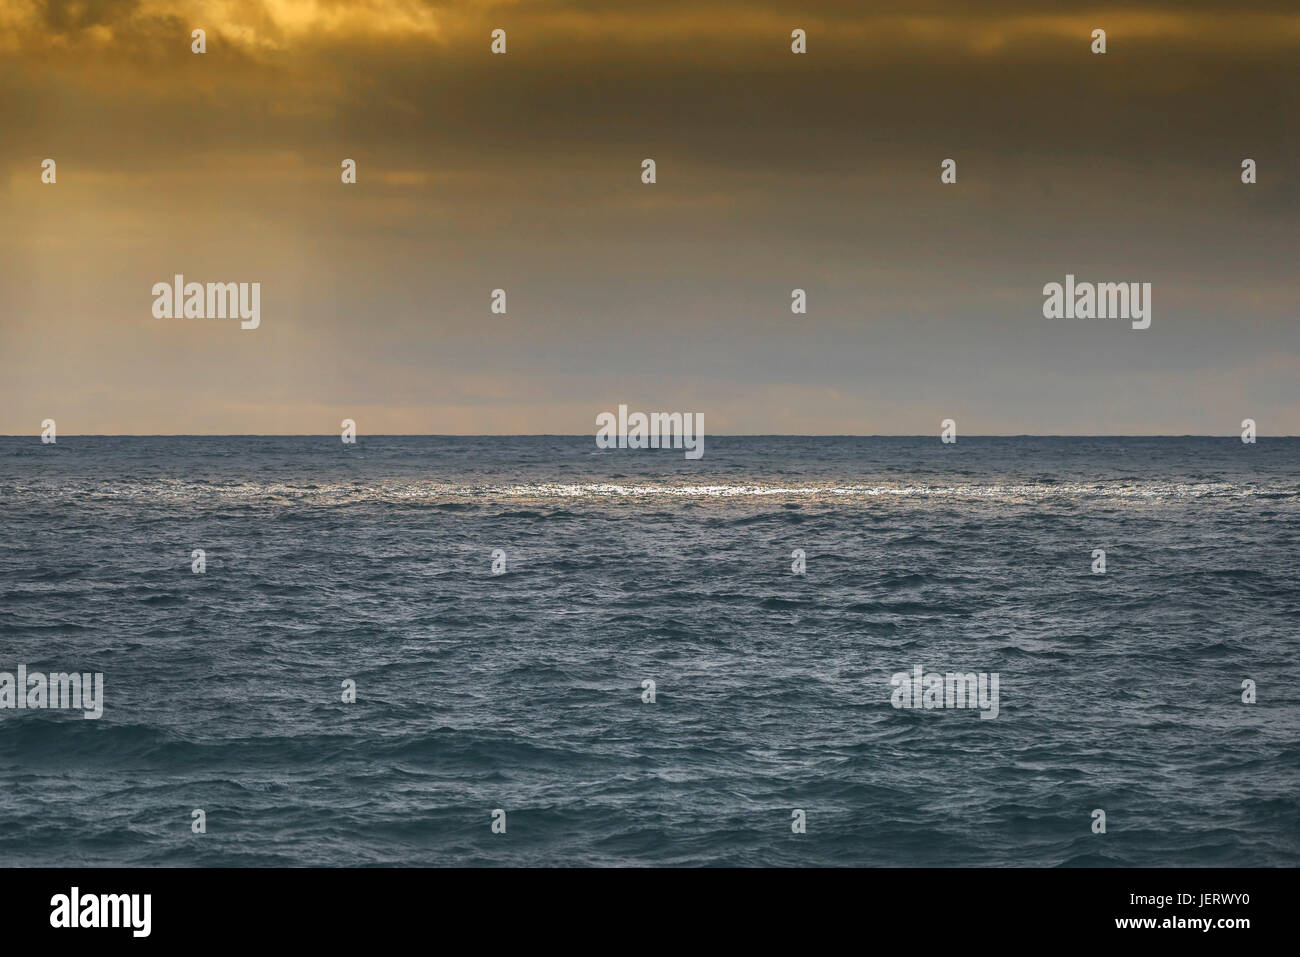 Sunight breaking though clouds to illuminate the sea. - Stock Image